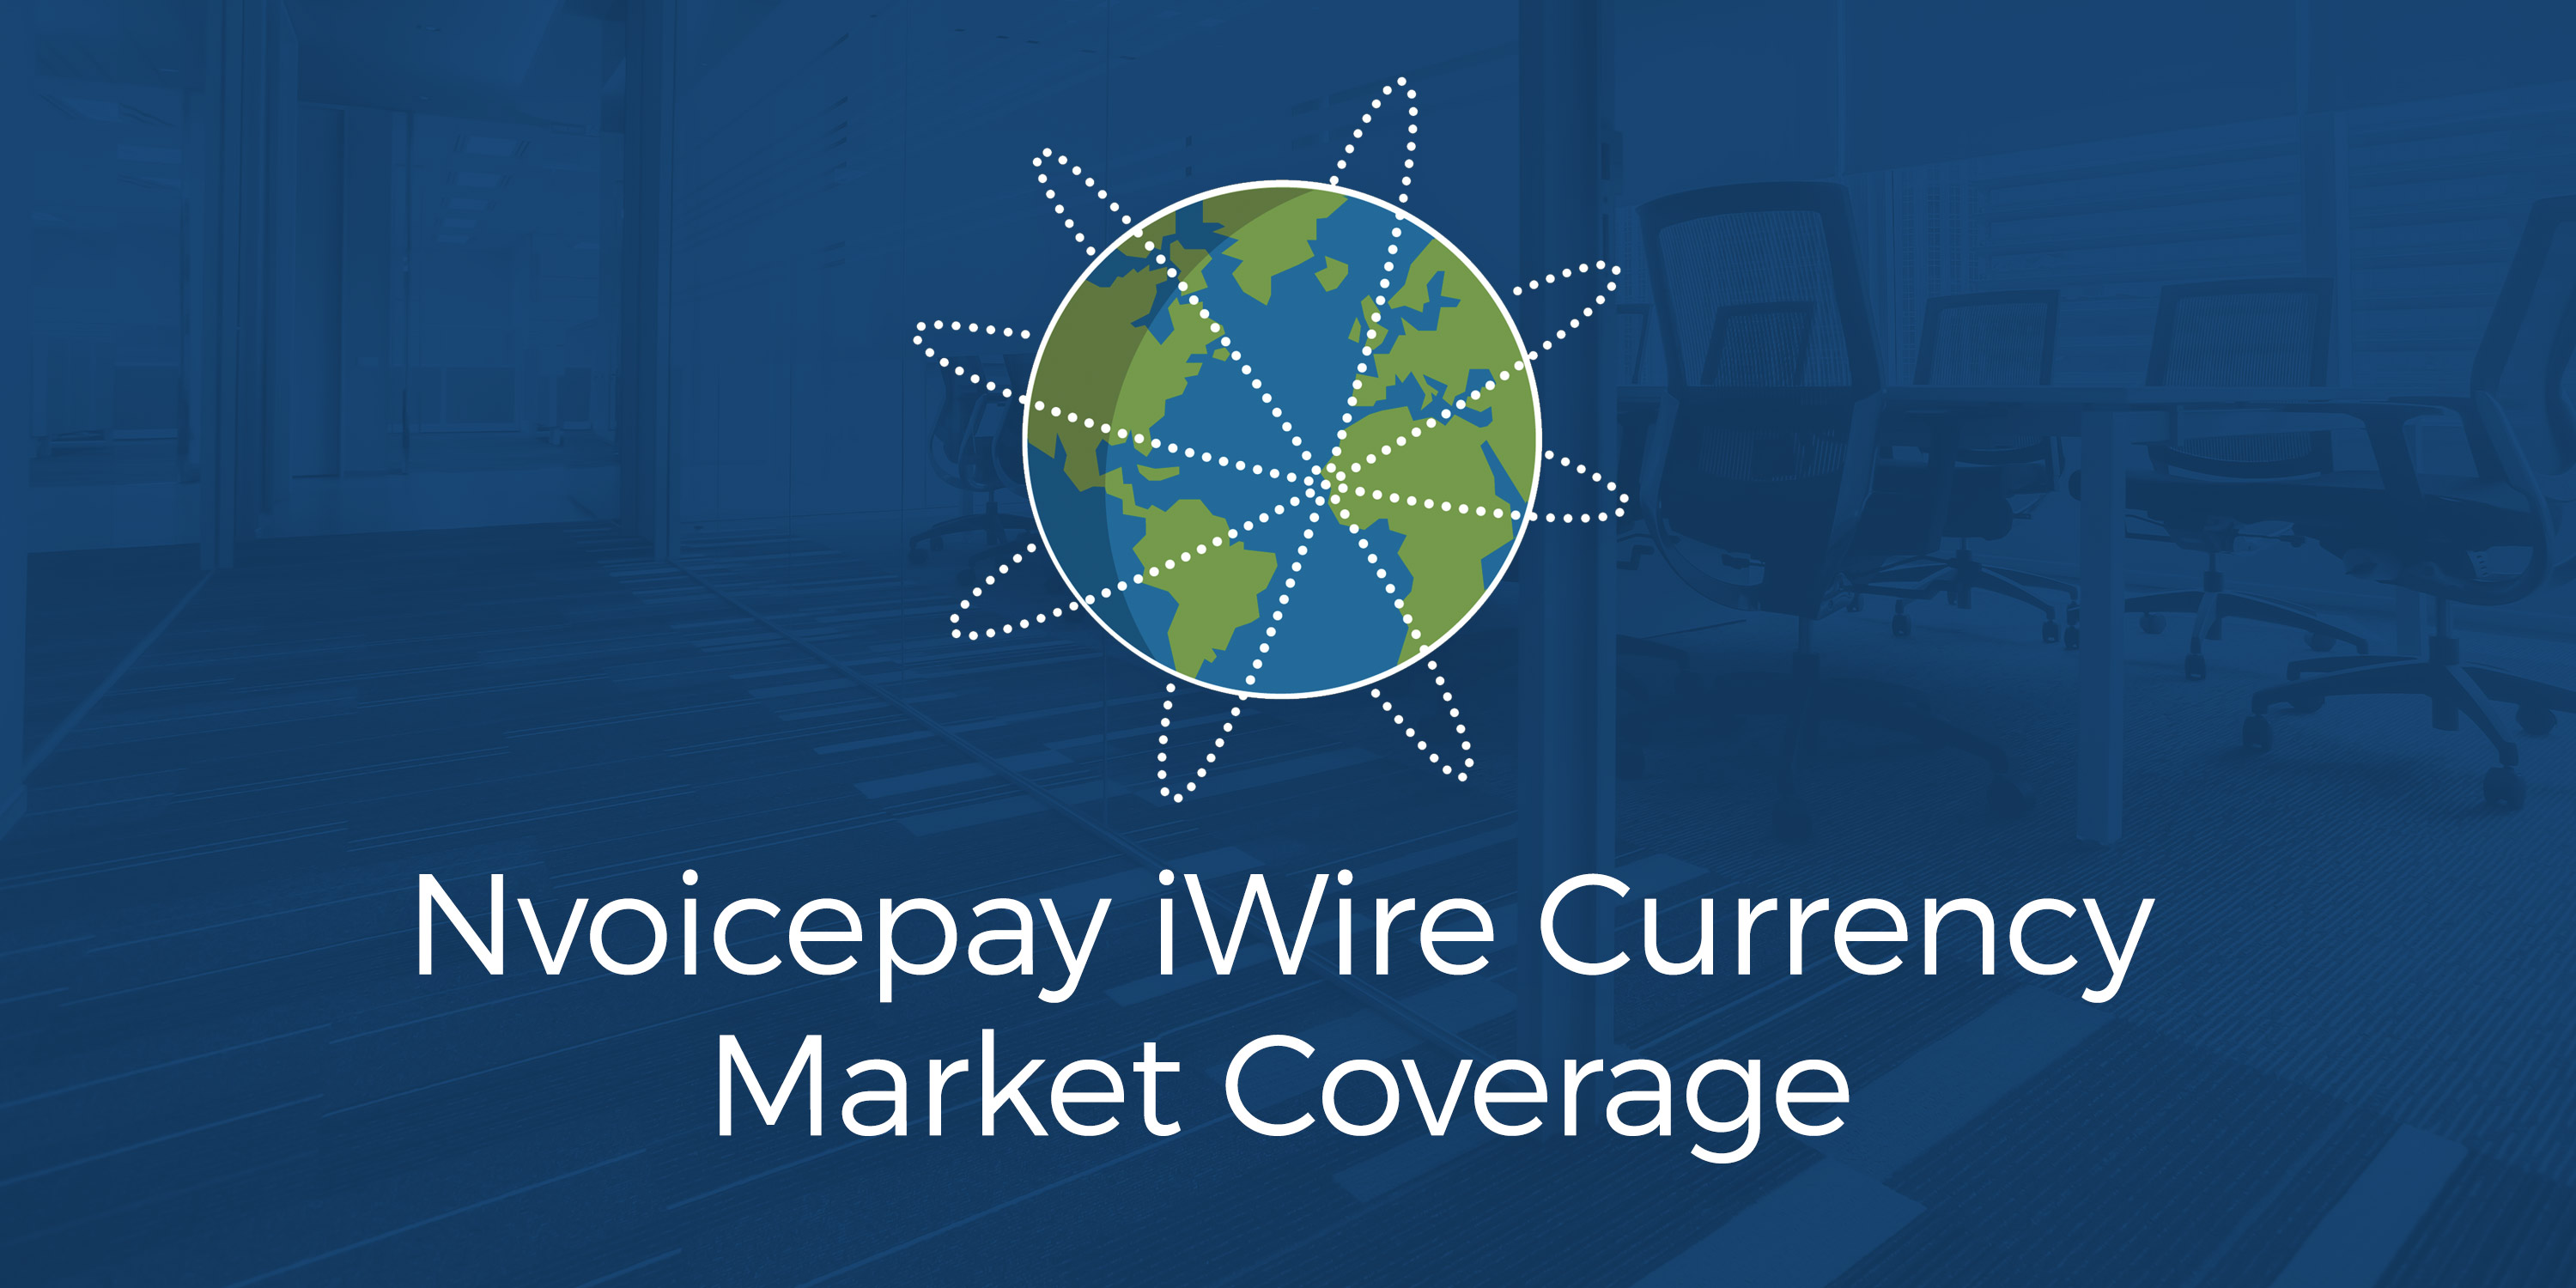 Nvoicepay iWire Currency Market Coverage